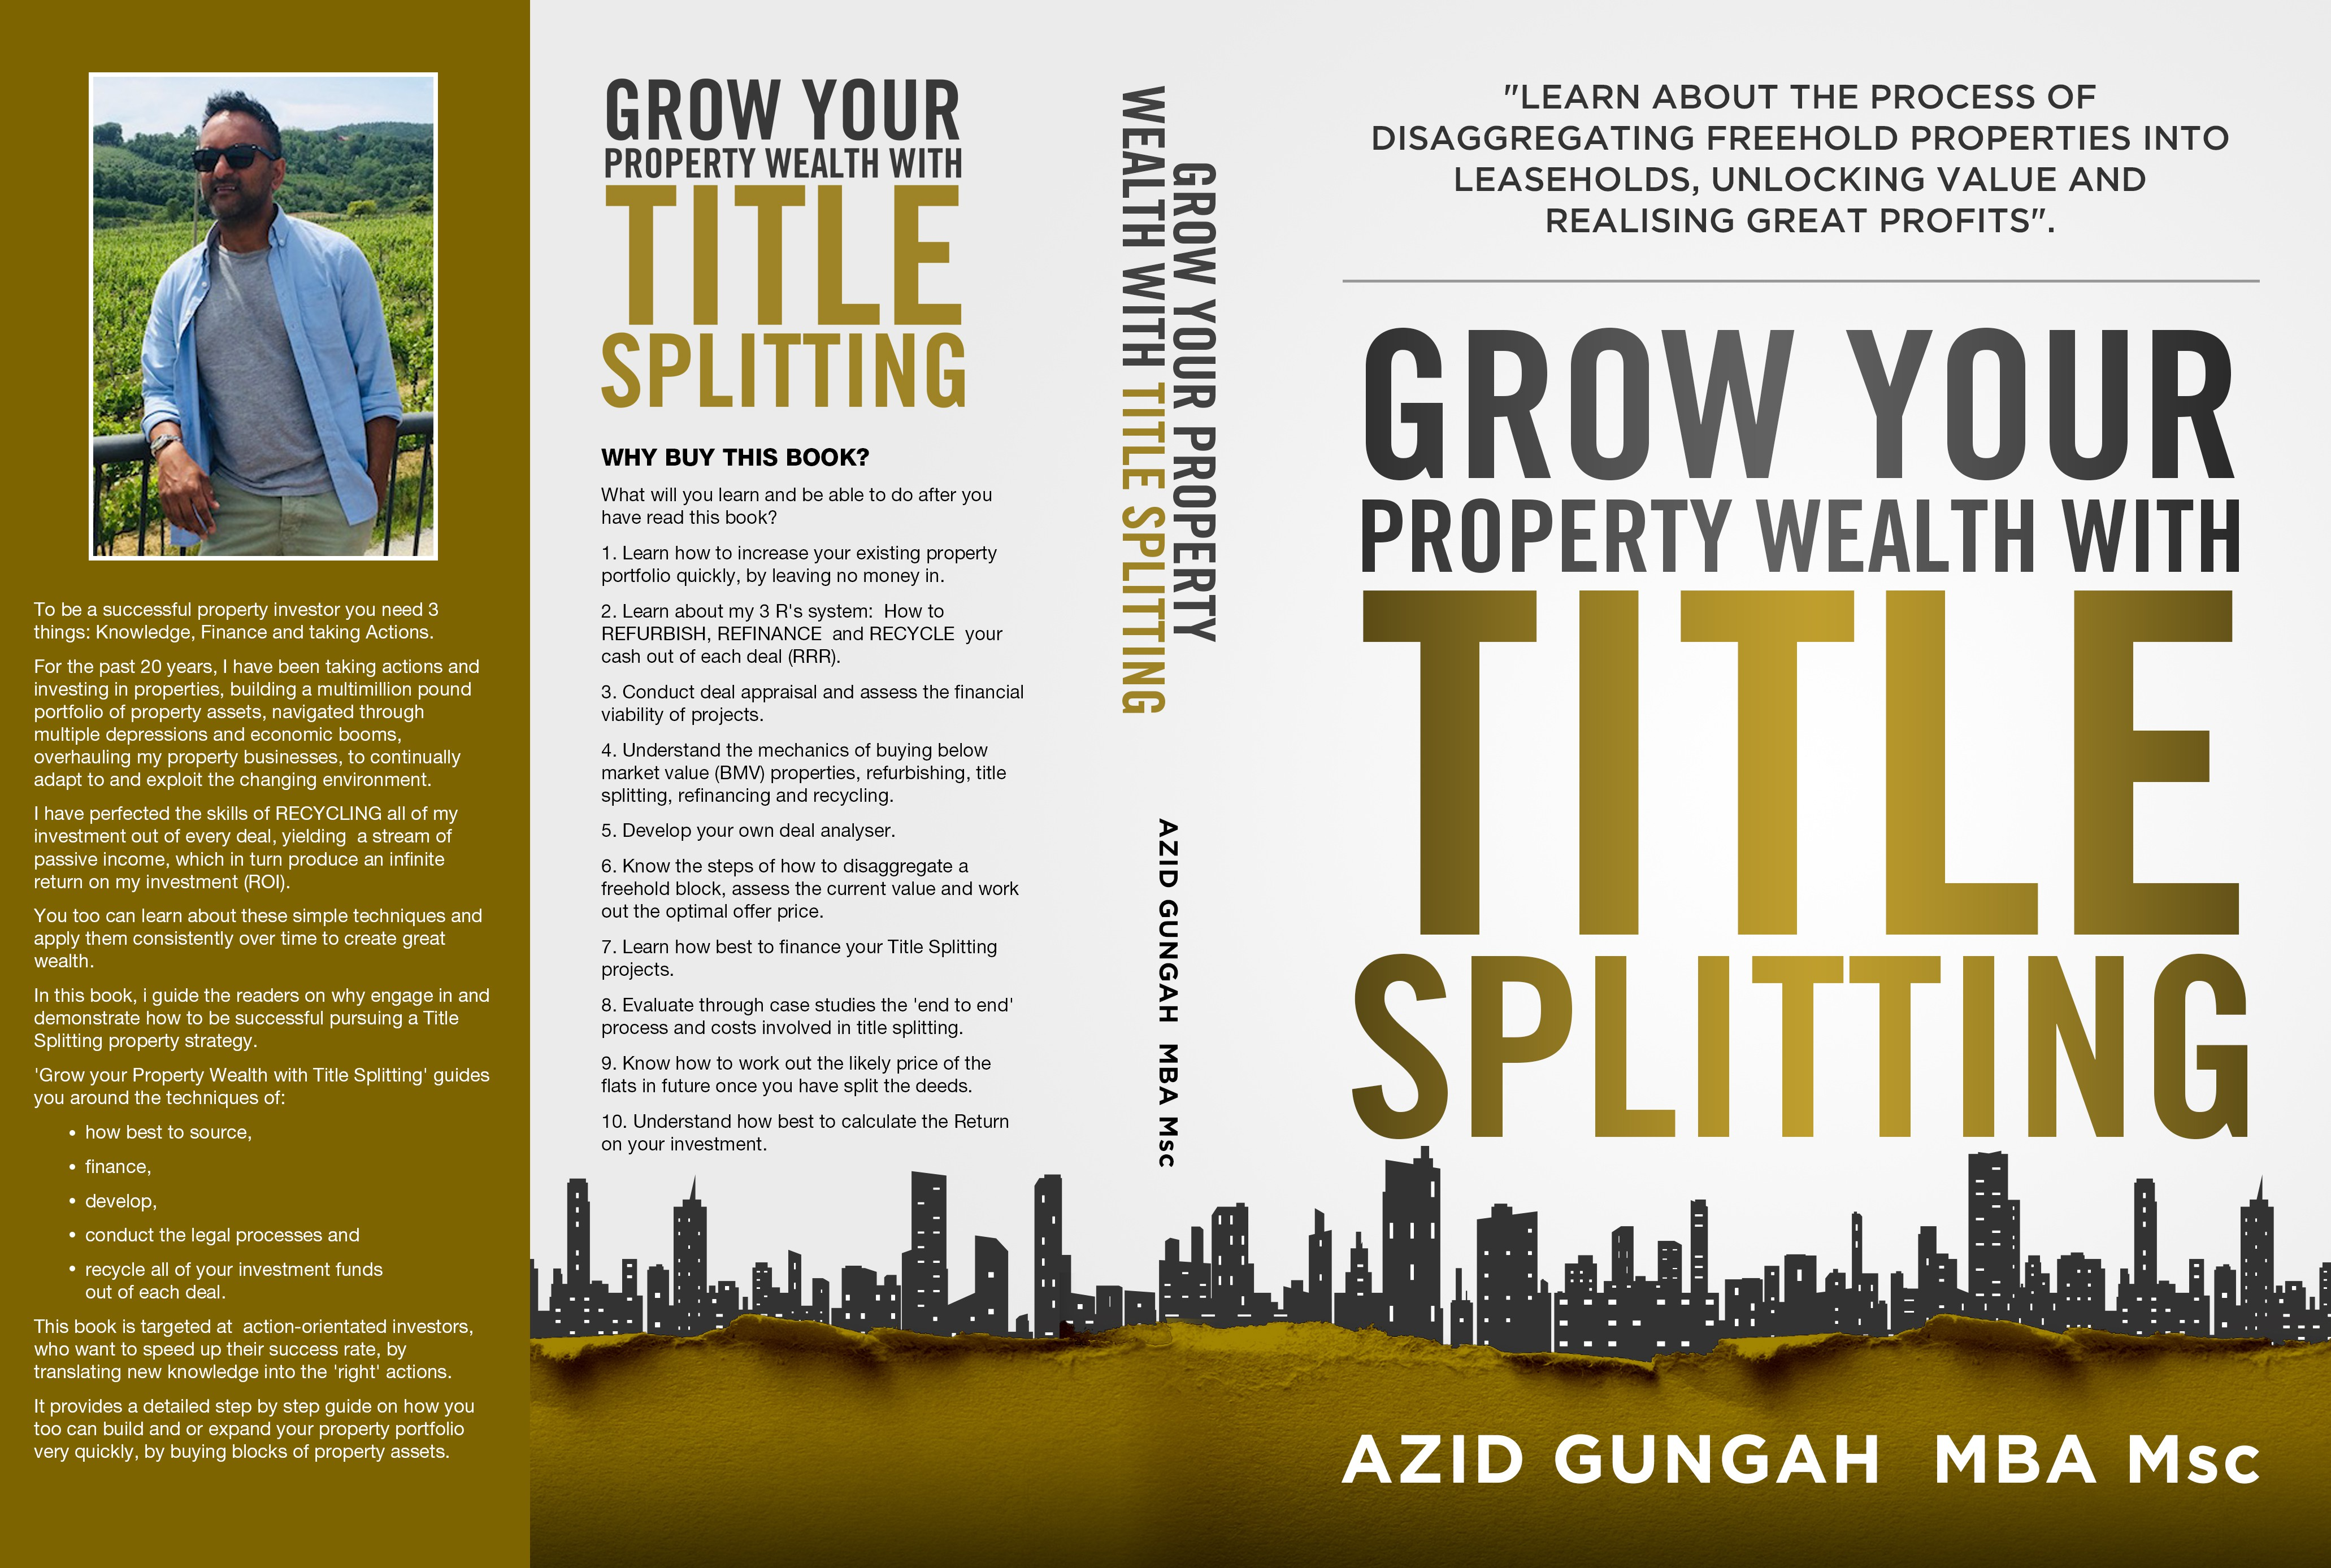 Design a book cover and format my new book which will be used for print and ebook format.